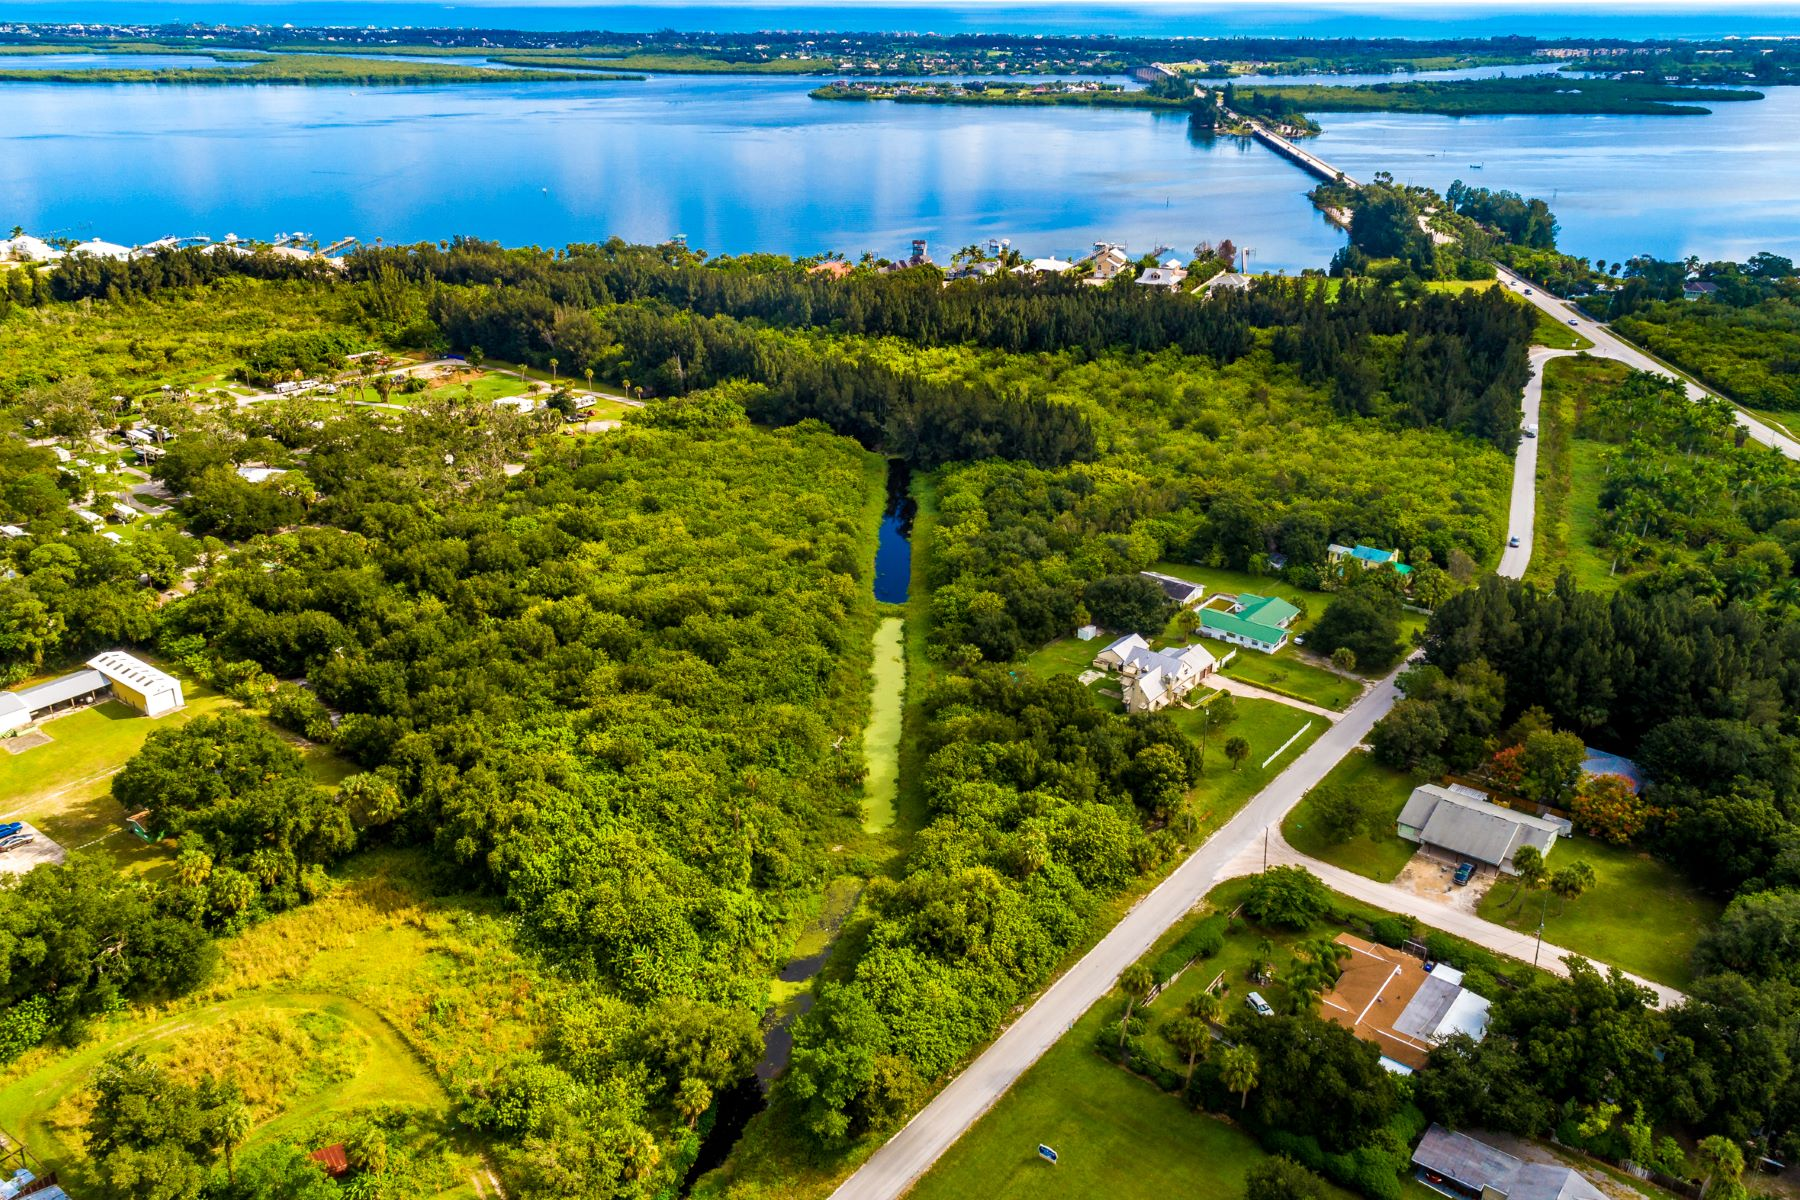 Property for Sale at Twenty Three Acres by Wabasso Causeway Area Near Indian River 4790 87th Street Sebastian, Florida 32958 United States